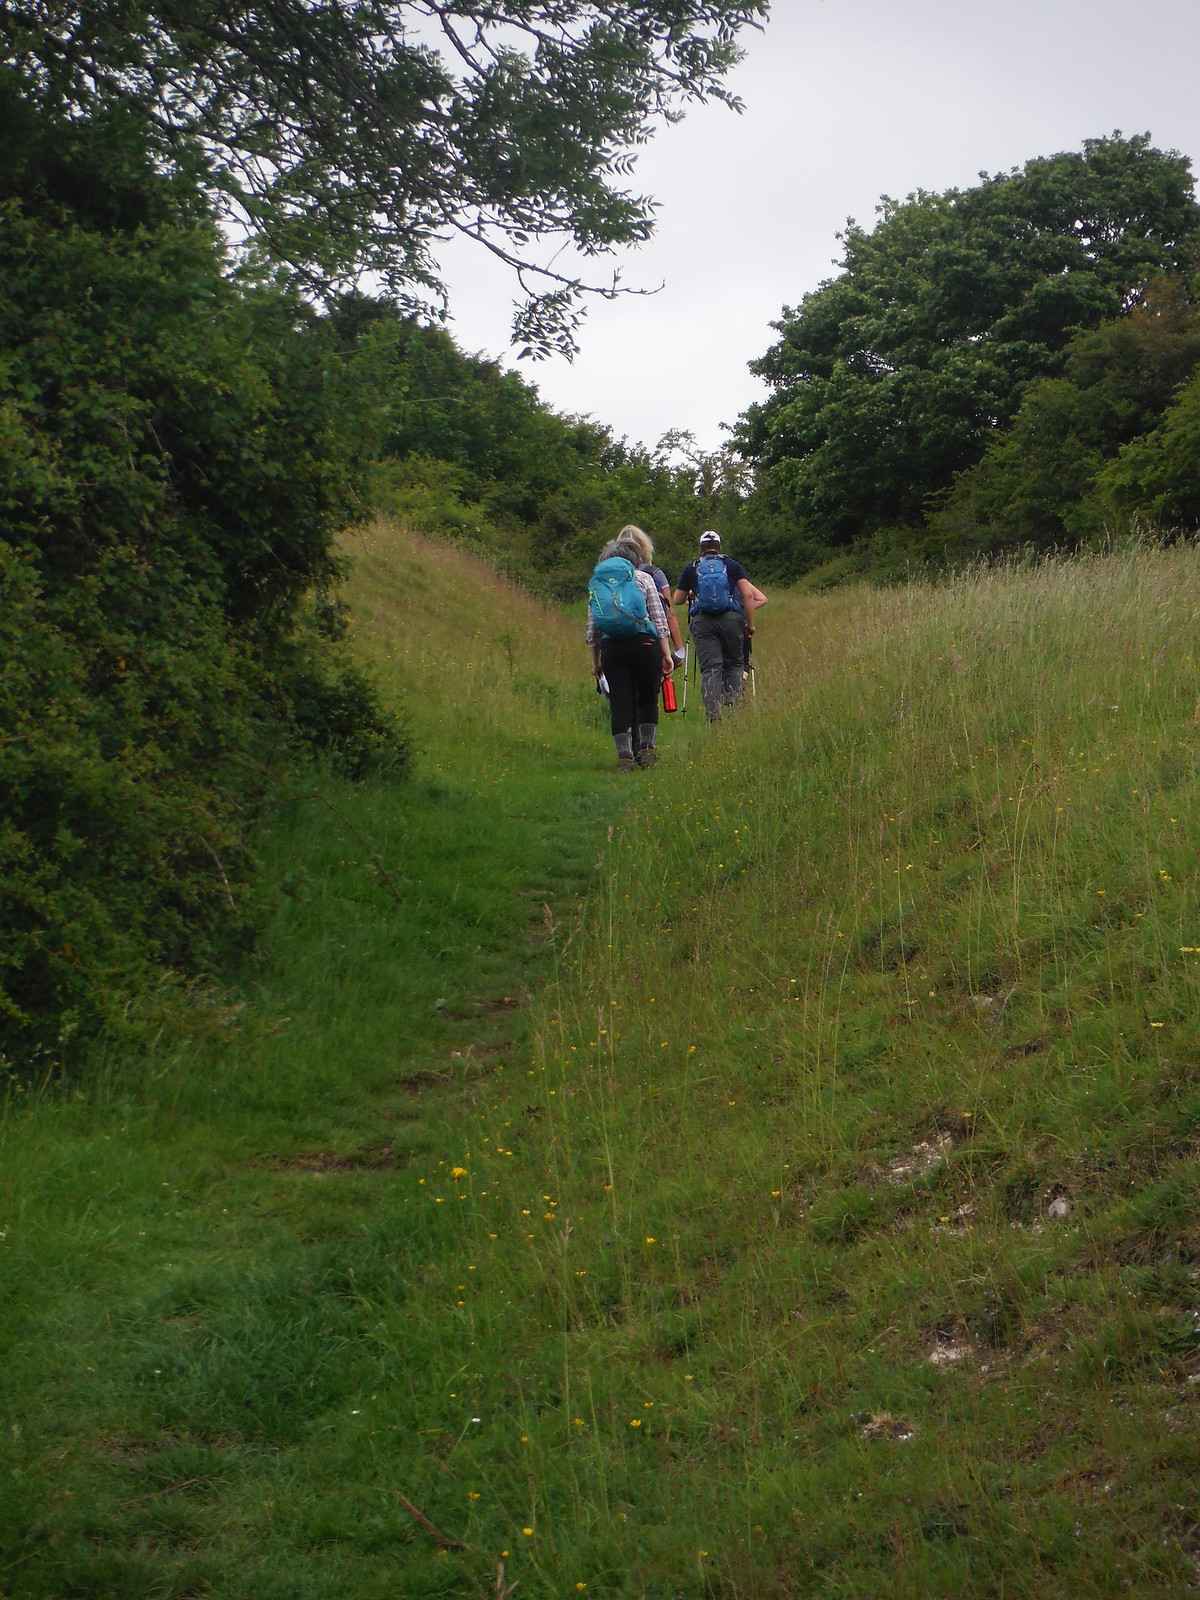 steep grassy path between earth banks SWC Walk 239 Halnaker to Chichester via Cass Sculpture Park and Goodwood